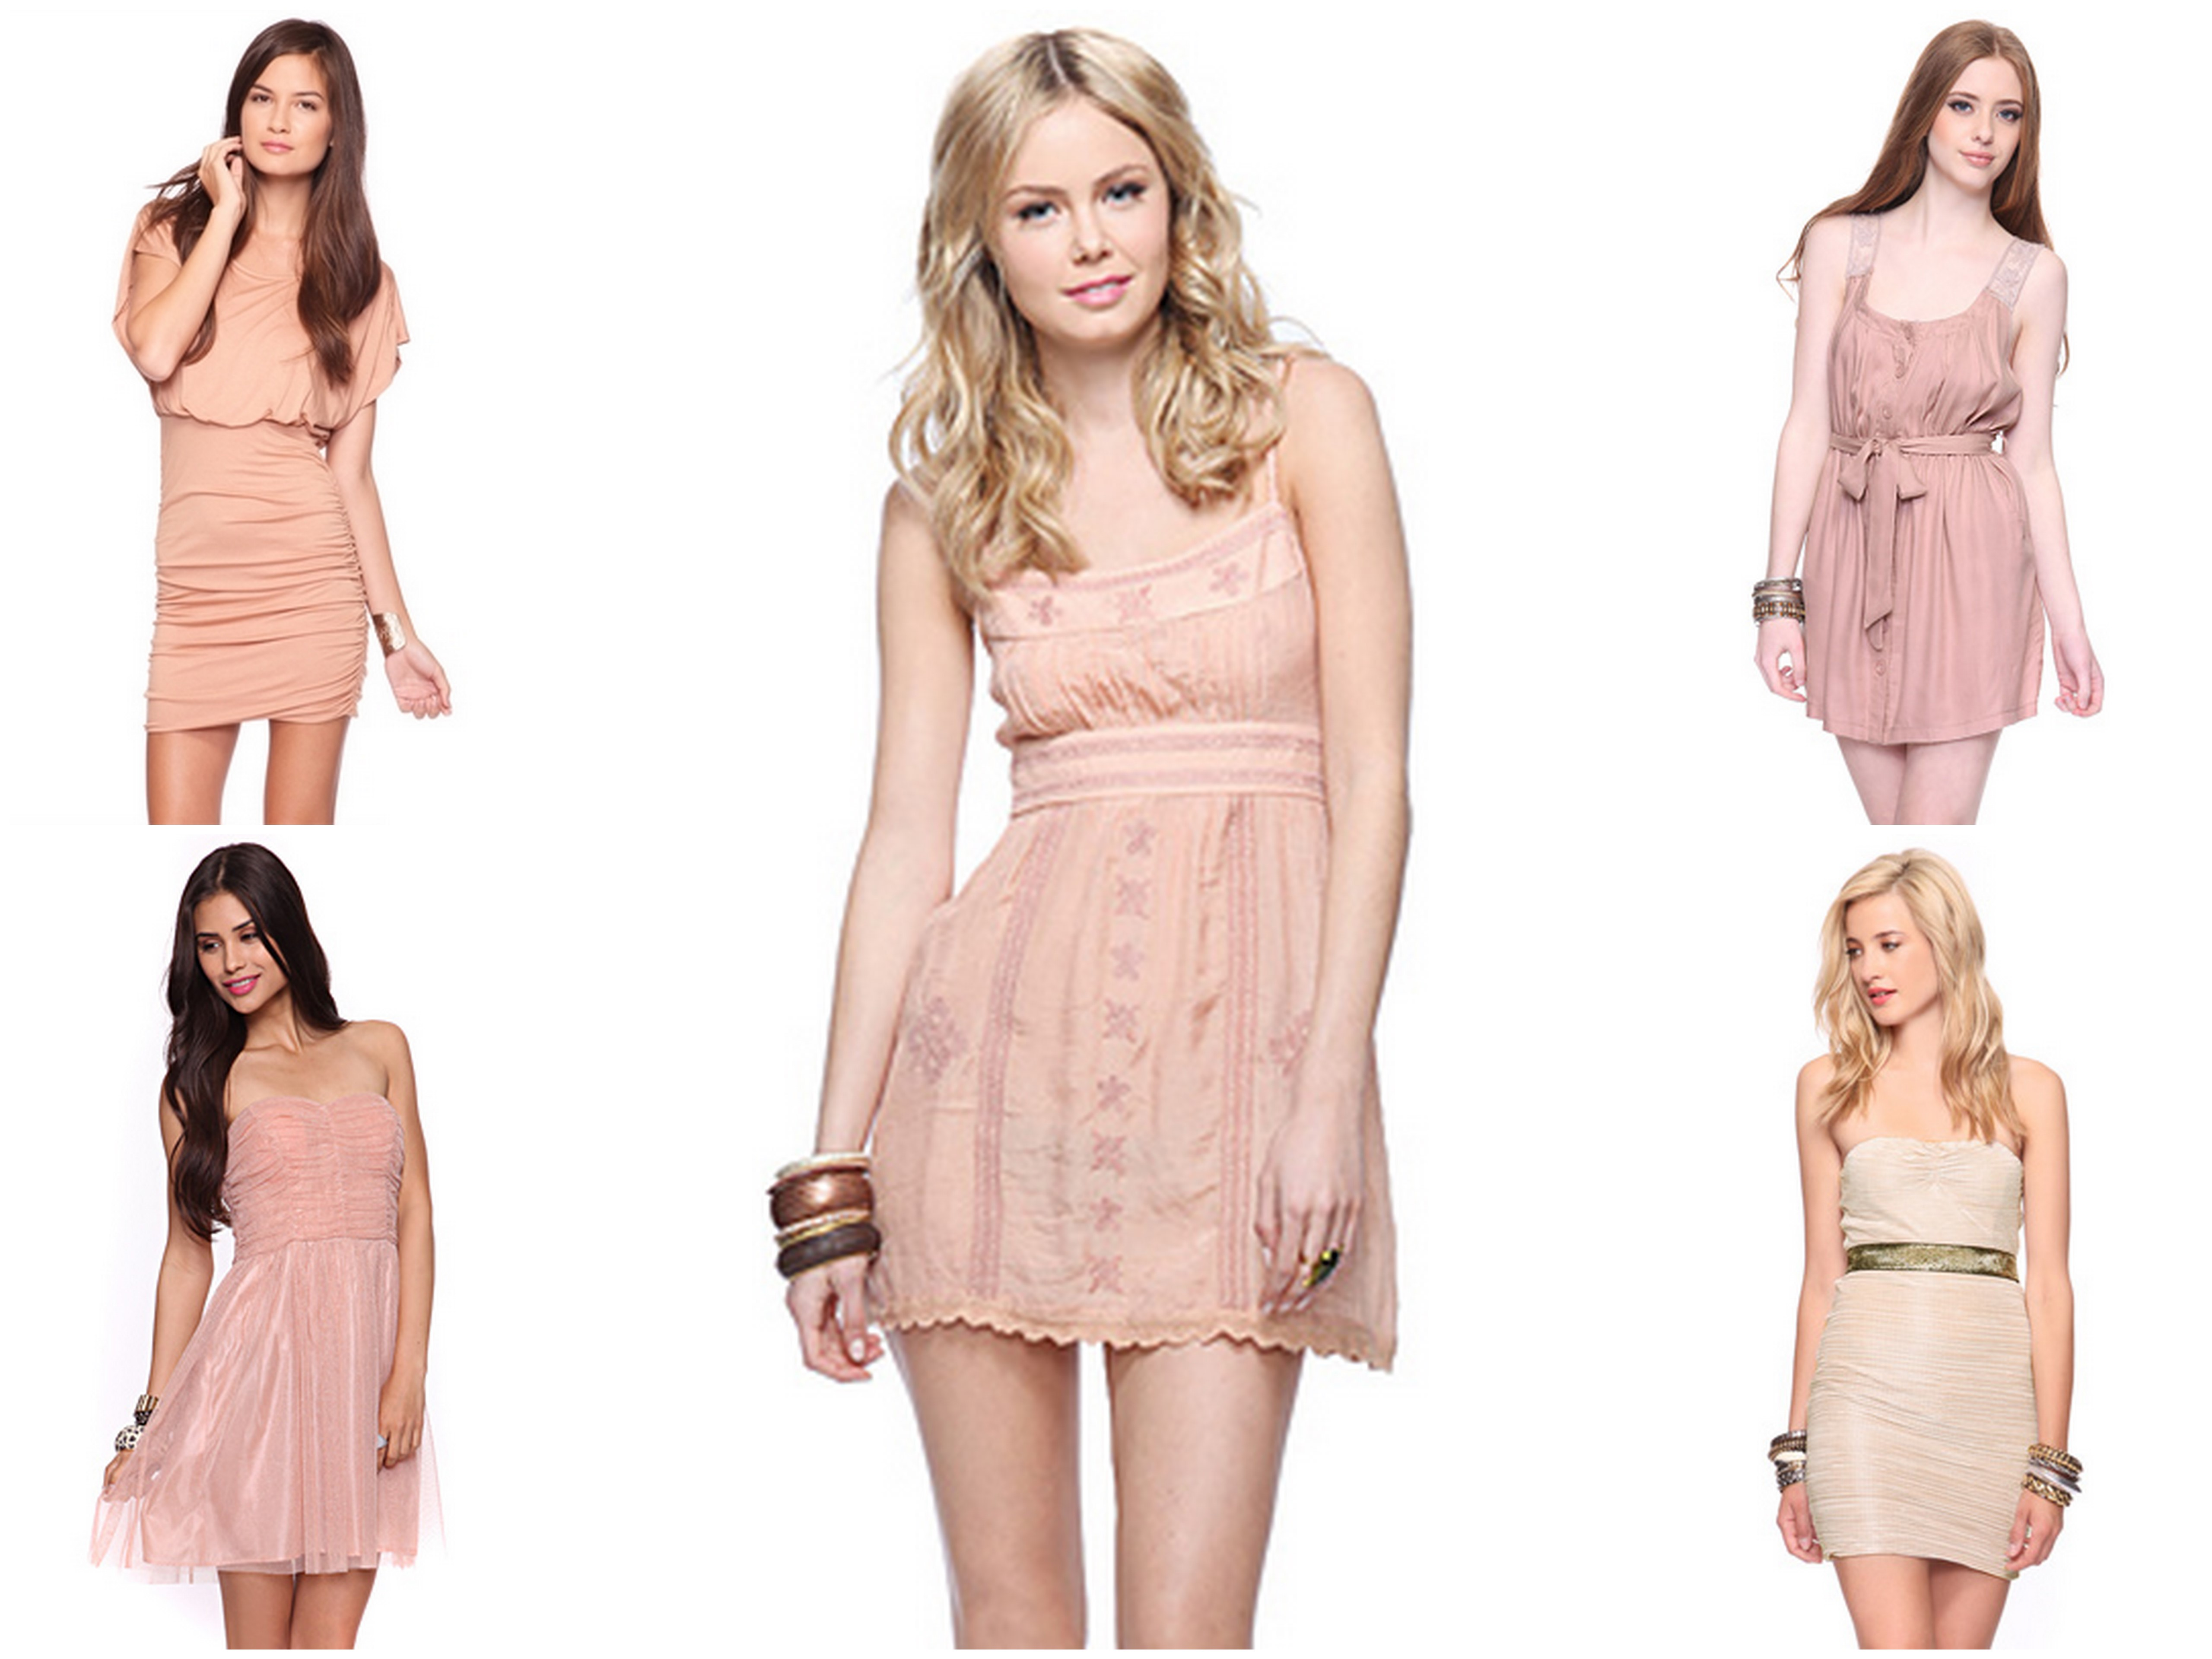 forever 21 dresses (Dec 31 2012 23:07:26) ~ Picture Gallery